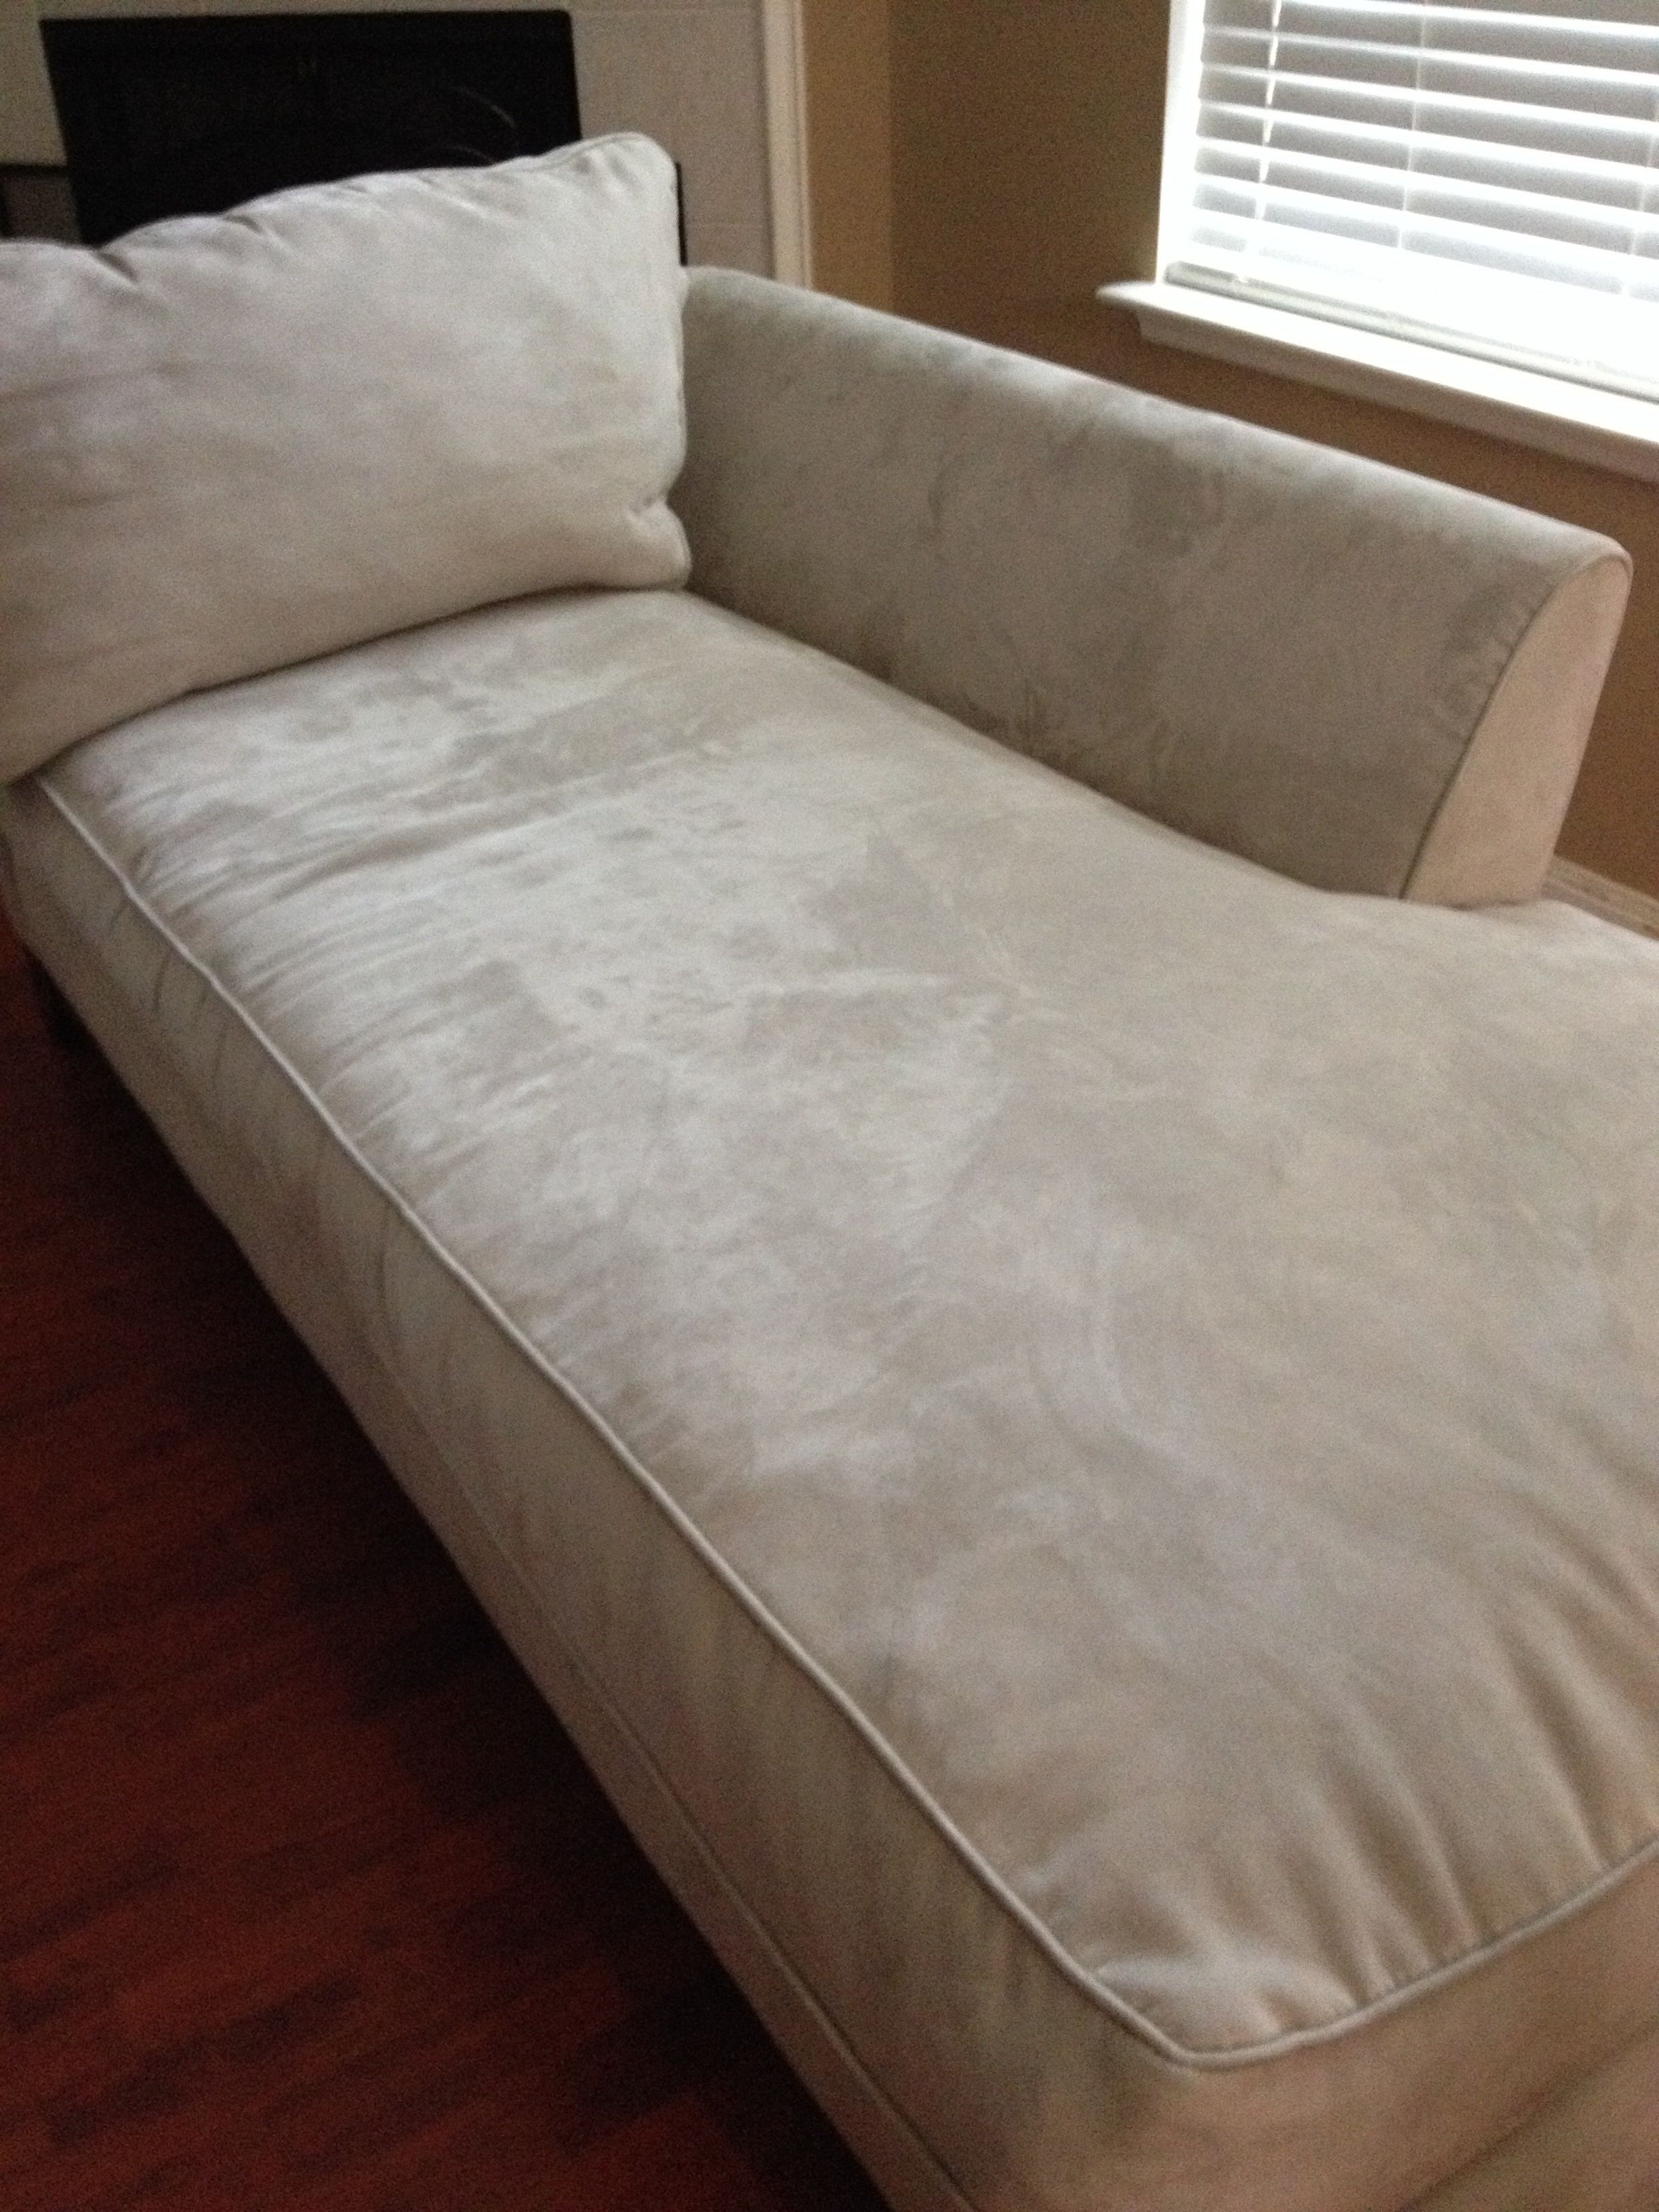 Clean Microfiber Couch Cover In Washing Machine Remove Wash Cold Water And